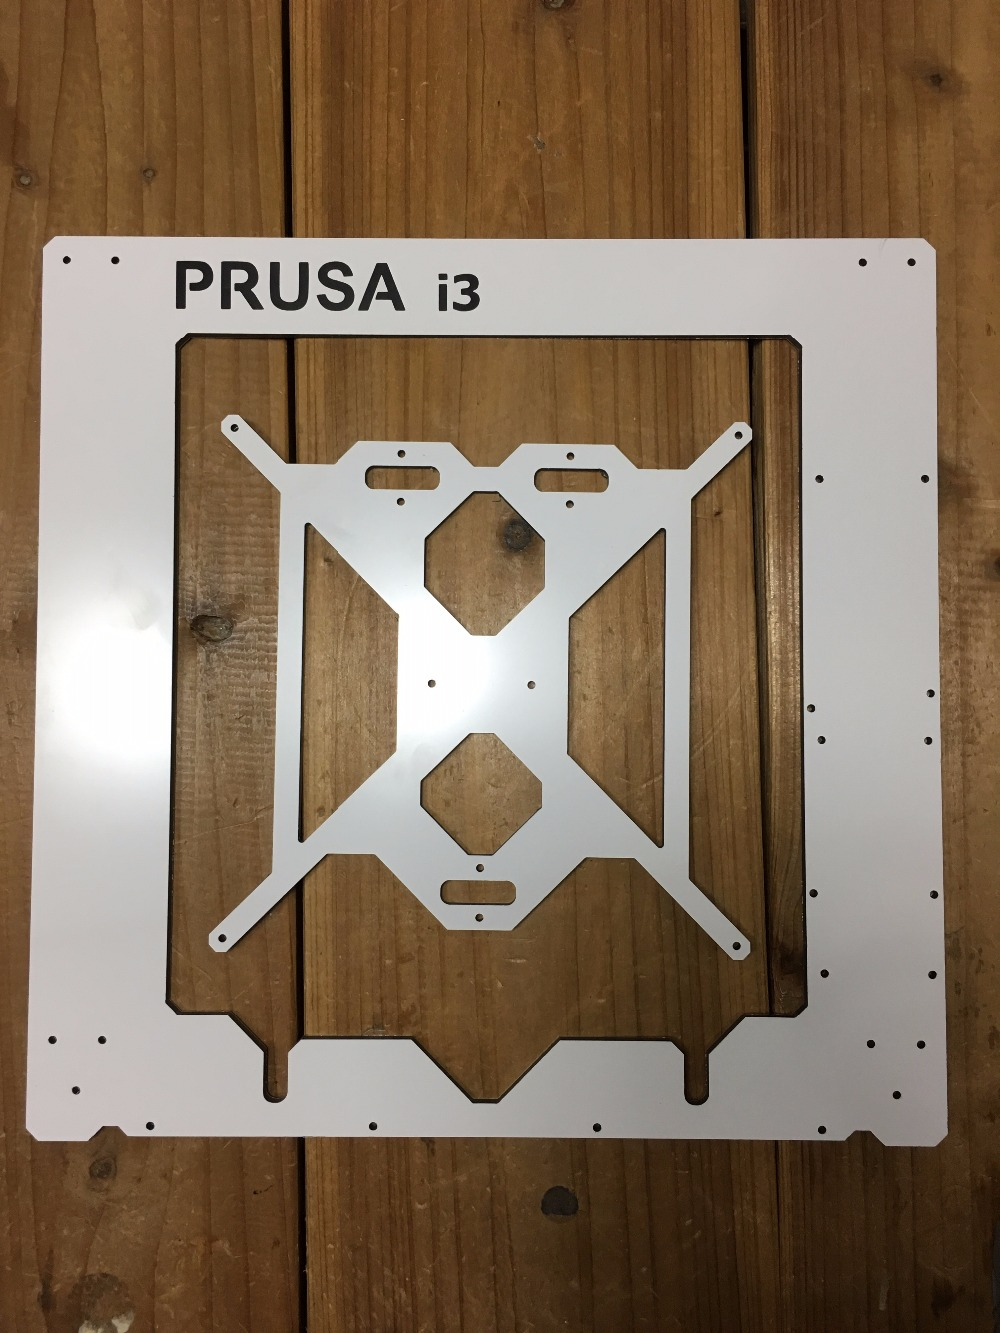 Prusa i3 Rework 3D printer aluminum composite frame kit RepRap Prusa i3 white color composite plate frame 3D Printer DIY 6 mm new 26pcs abs printed parts kit for reprap prusa i3 rework black pla 3d printer diy durable quality